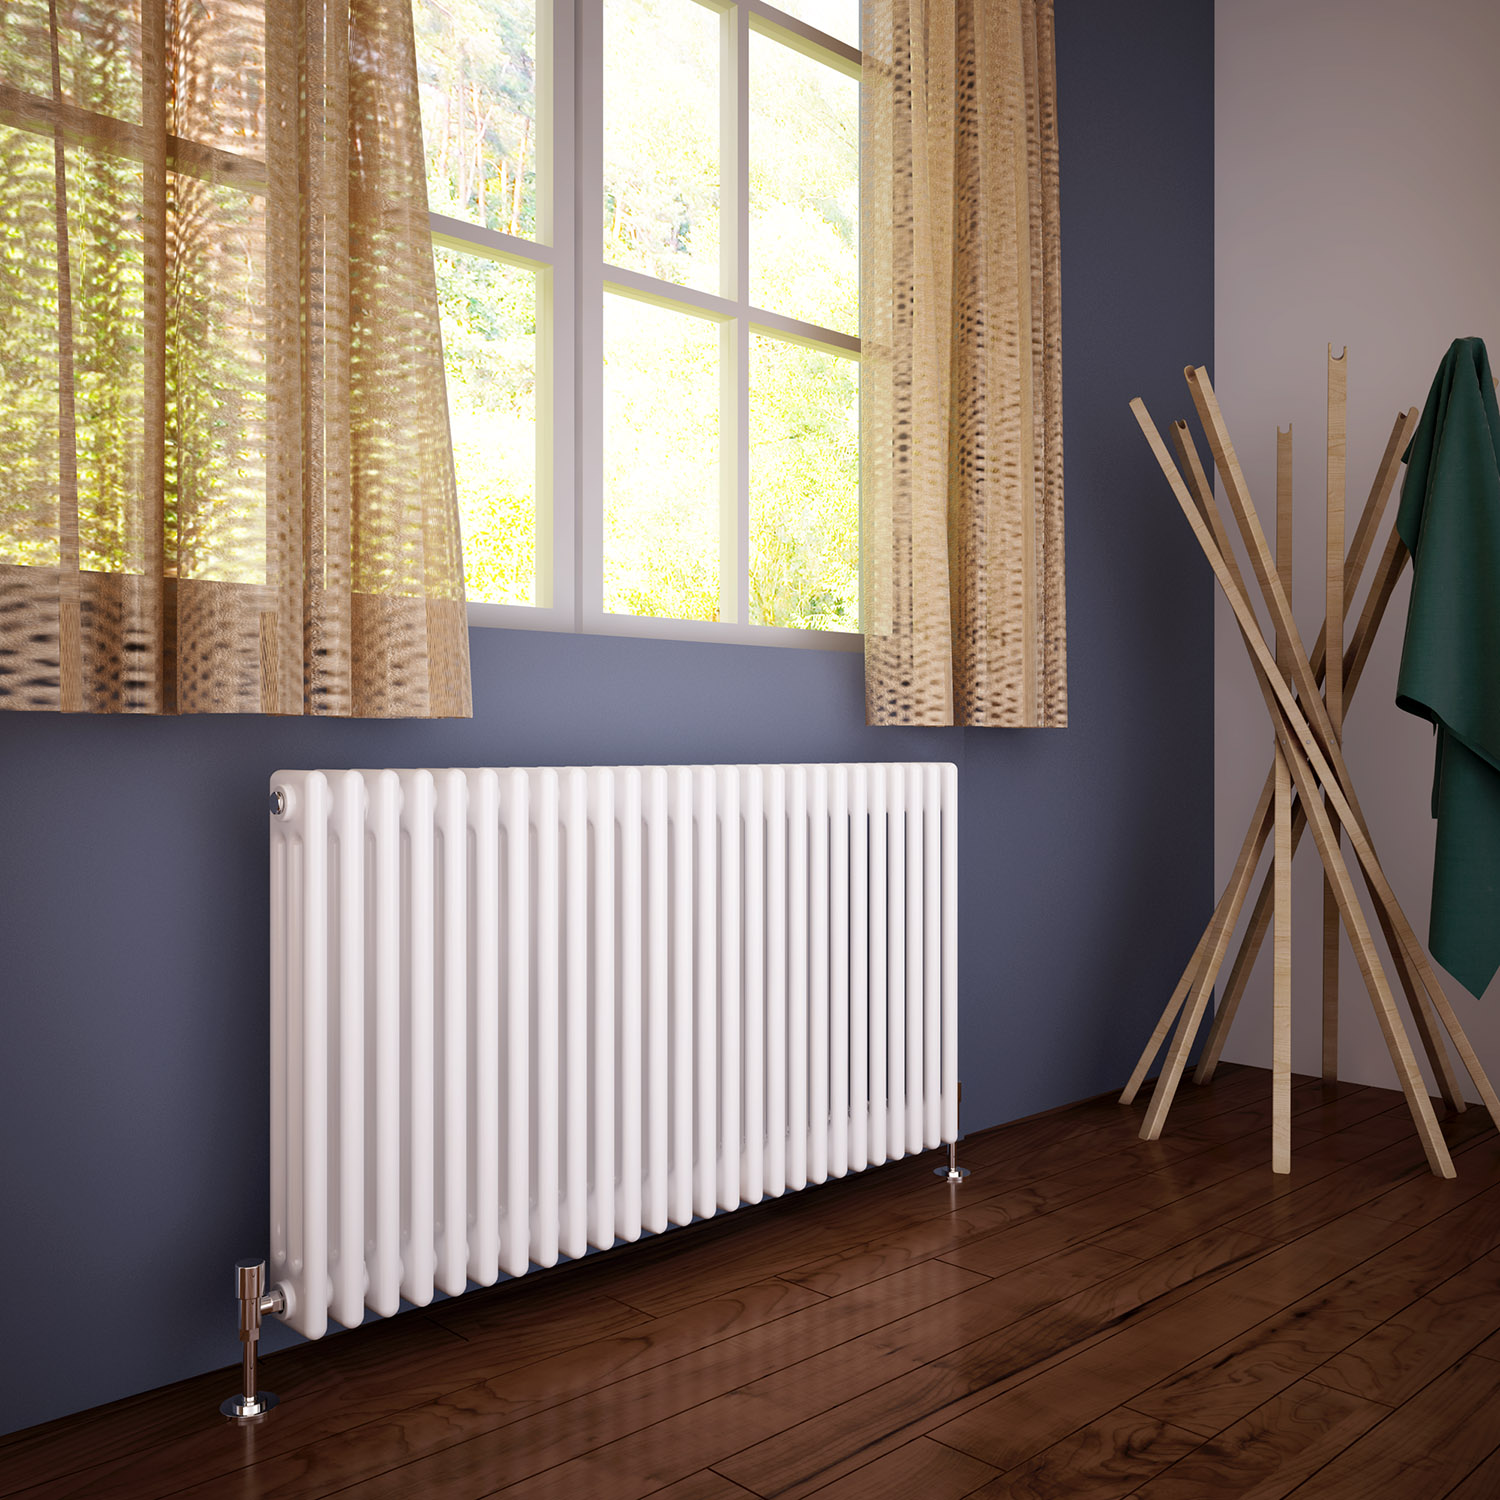 Traditional 3 Column Radiator Bathroom Horizontal Cast Iron Style Rads 600x1177 Ebay